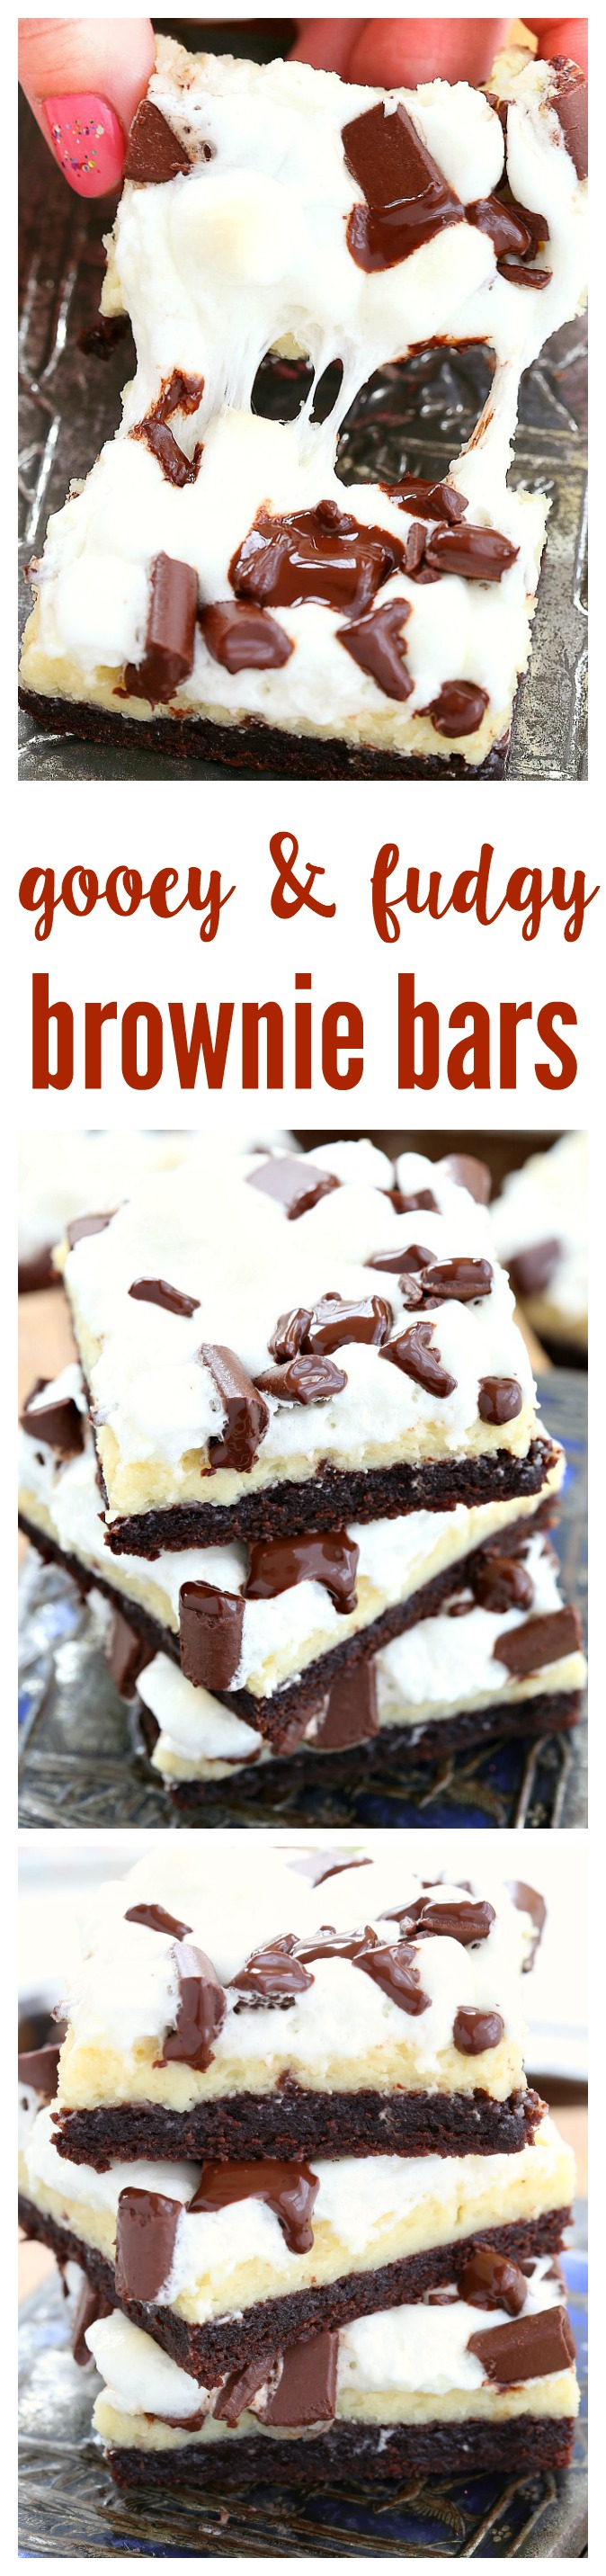 So amazingly easy to prepare, these gooey fudgy brownie bars will leave everyone drooling! Fudgy brownie, creamy cheesecake, gooey marshmallows and oozing chocolate - what's not to love?